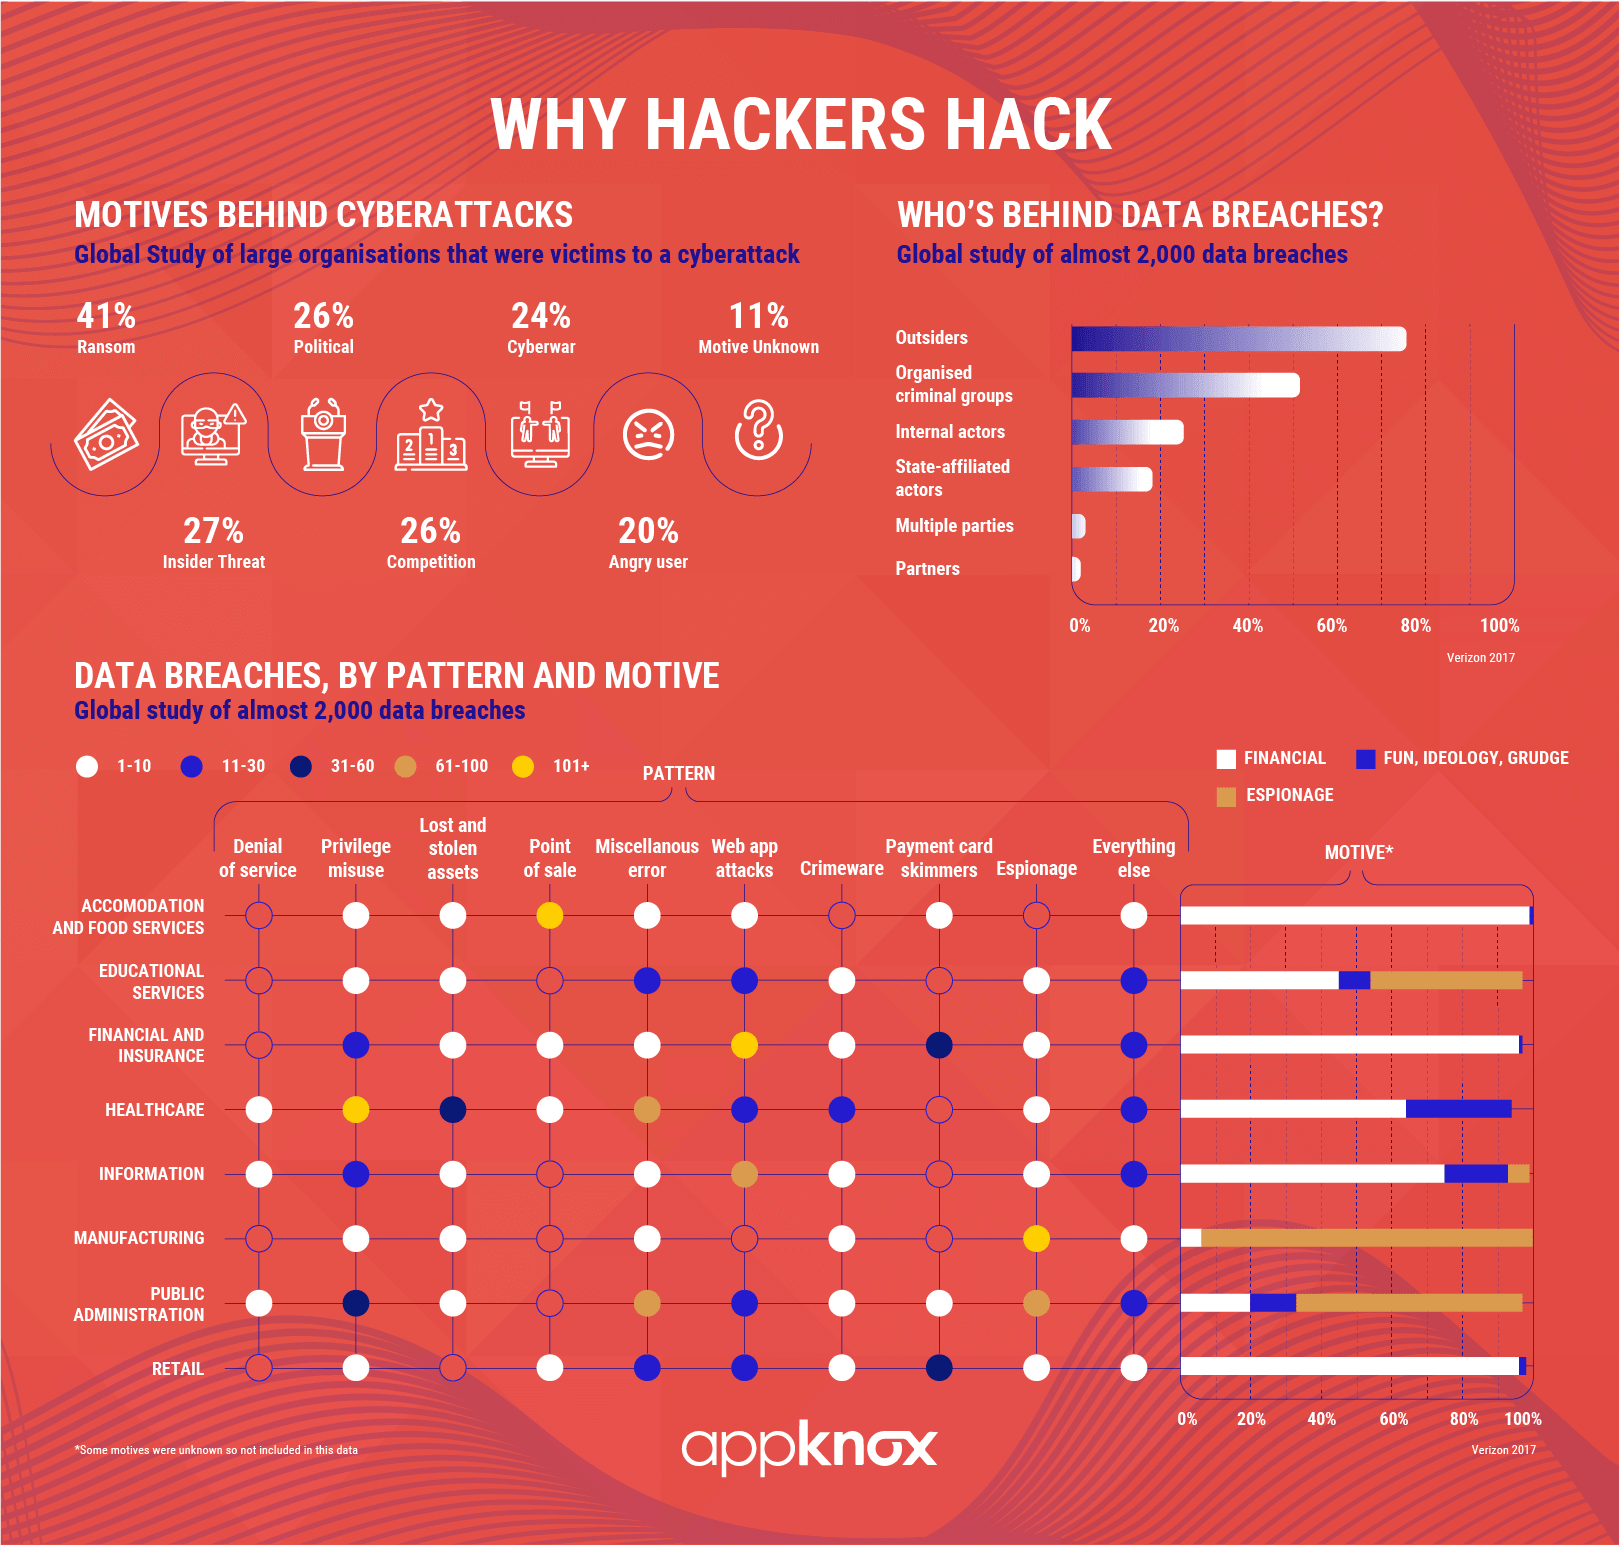 Why do hackers hack?